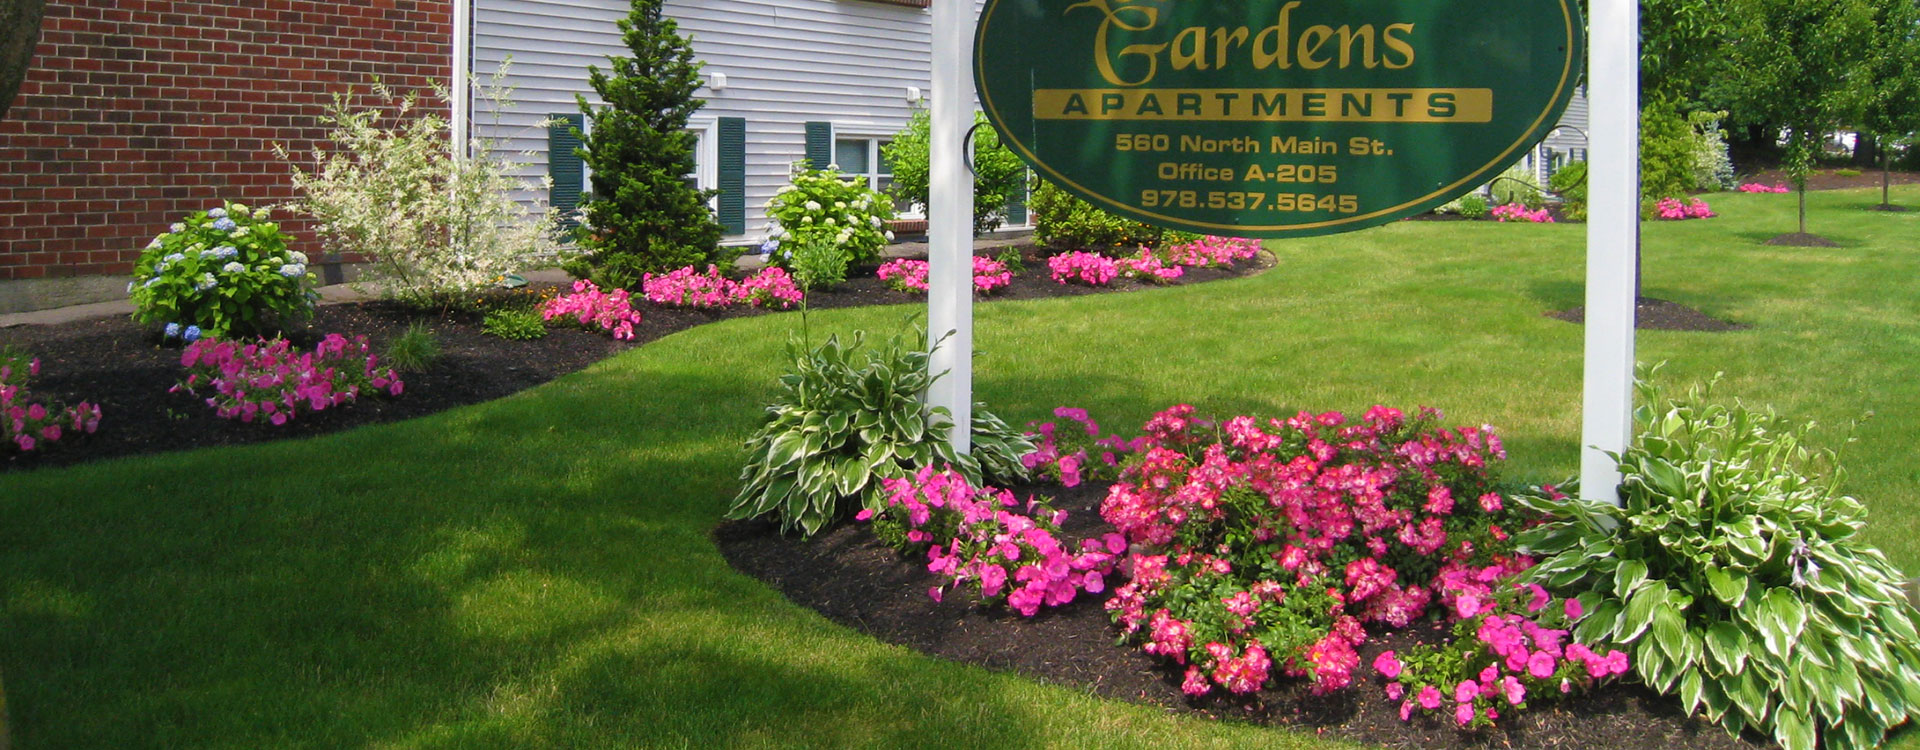 Commercial Landscaping and Maintenance by J. Martin